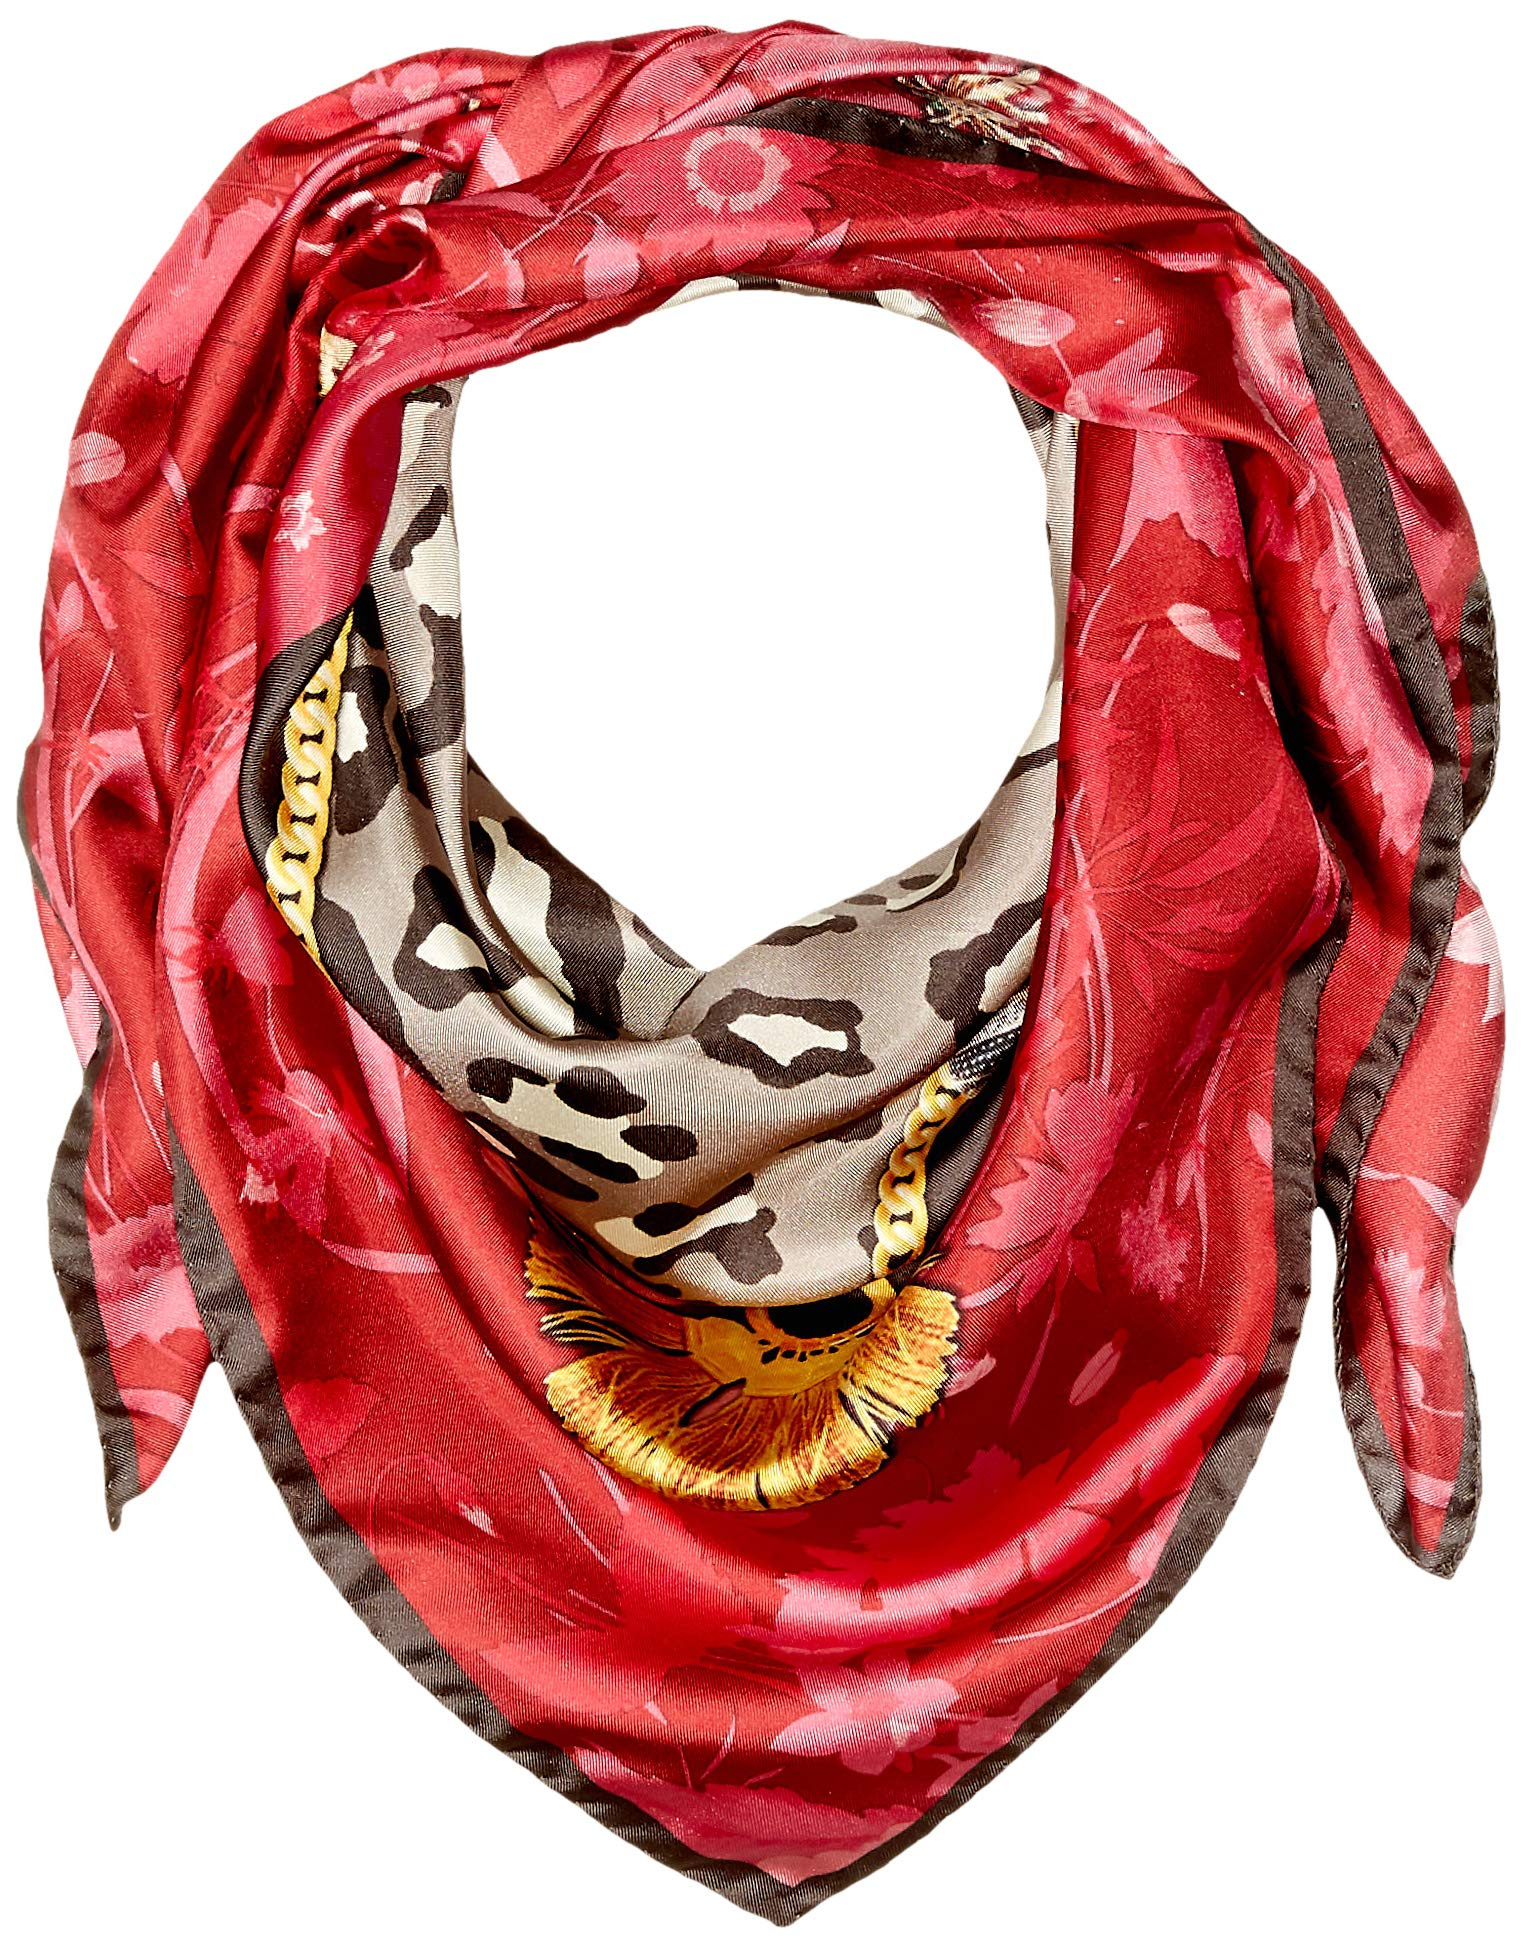 Lake Como SCARVES - Floral Jewel Scarves - Red Marsala